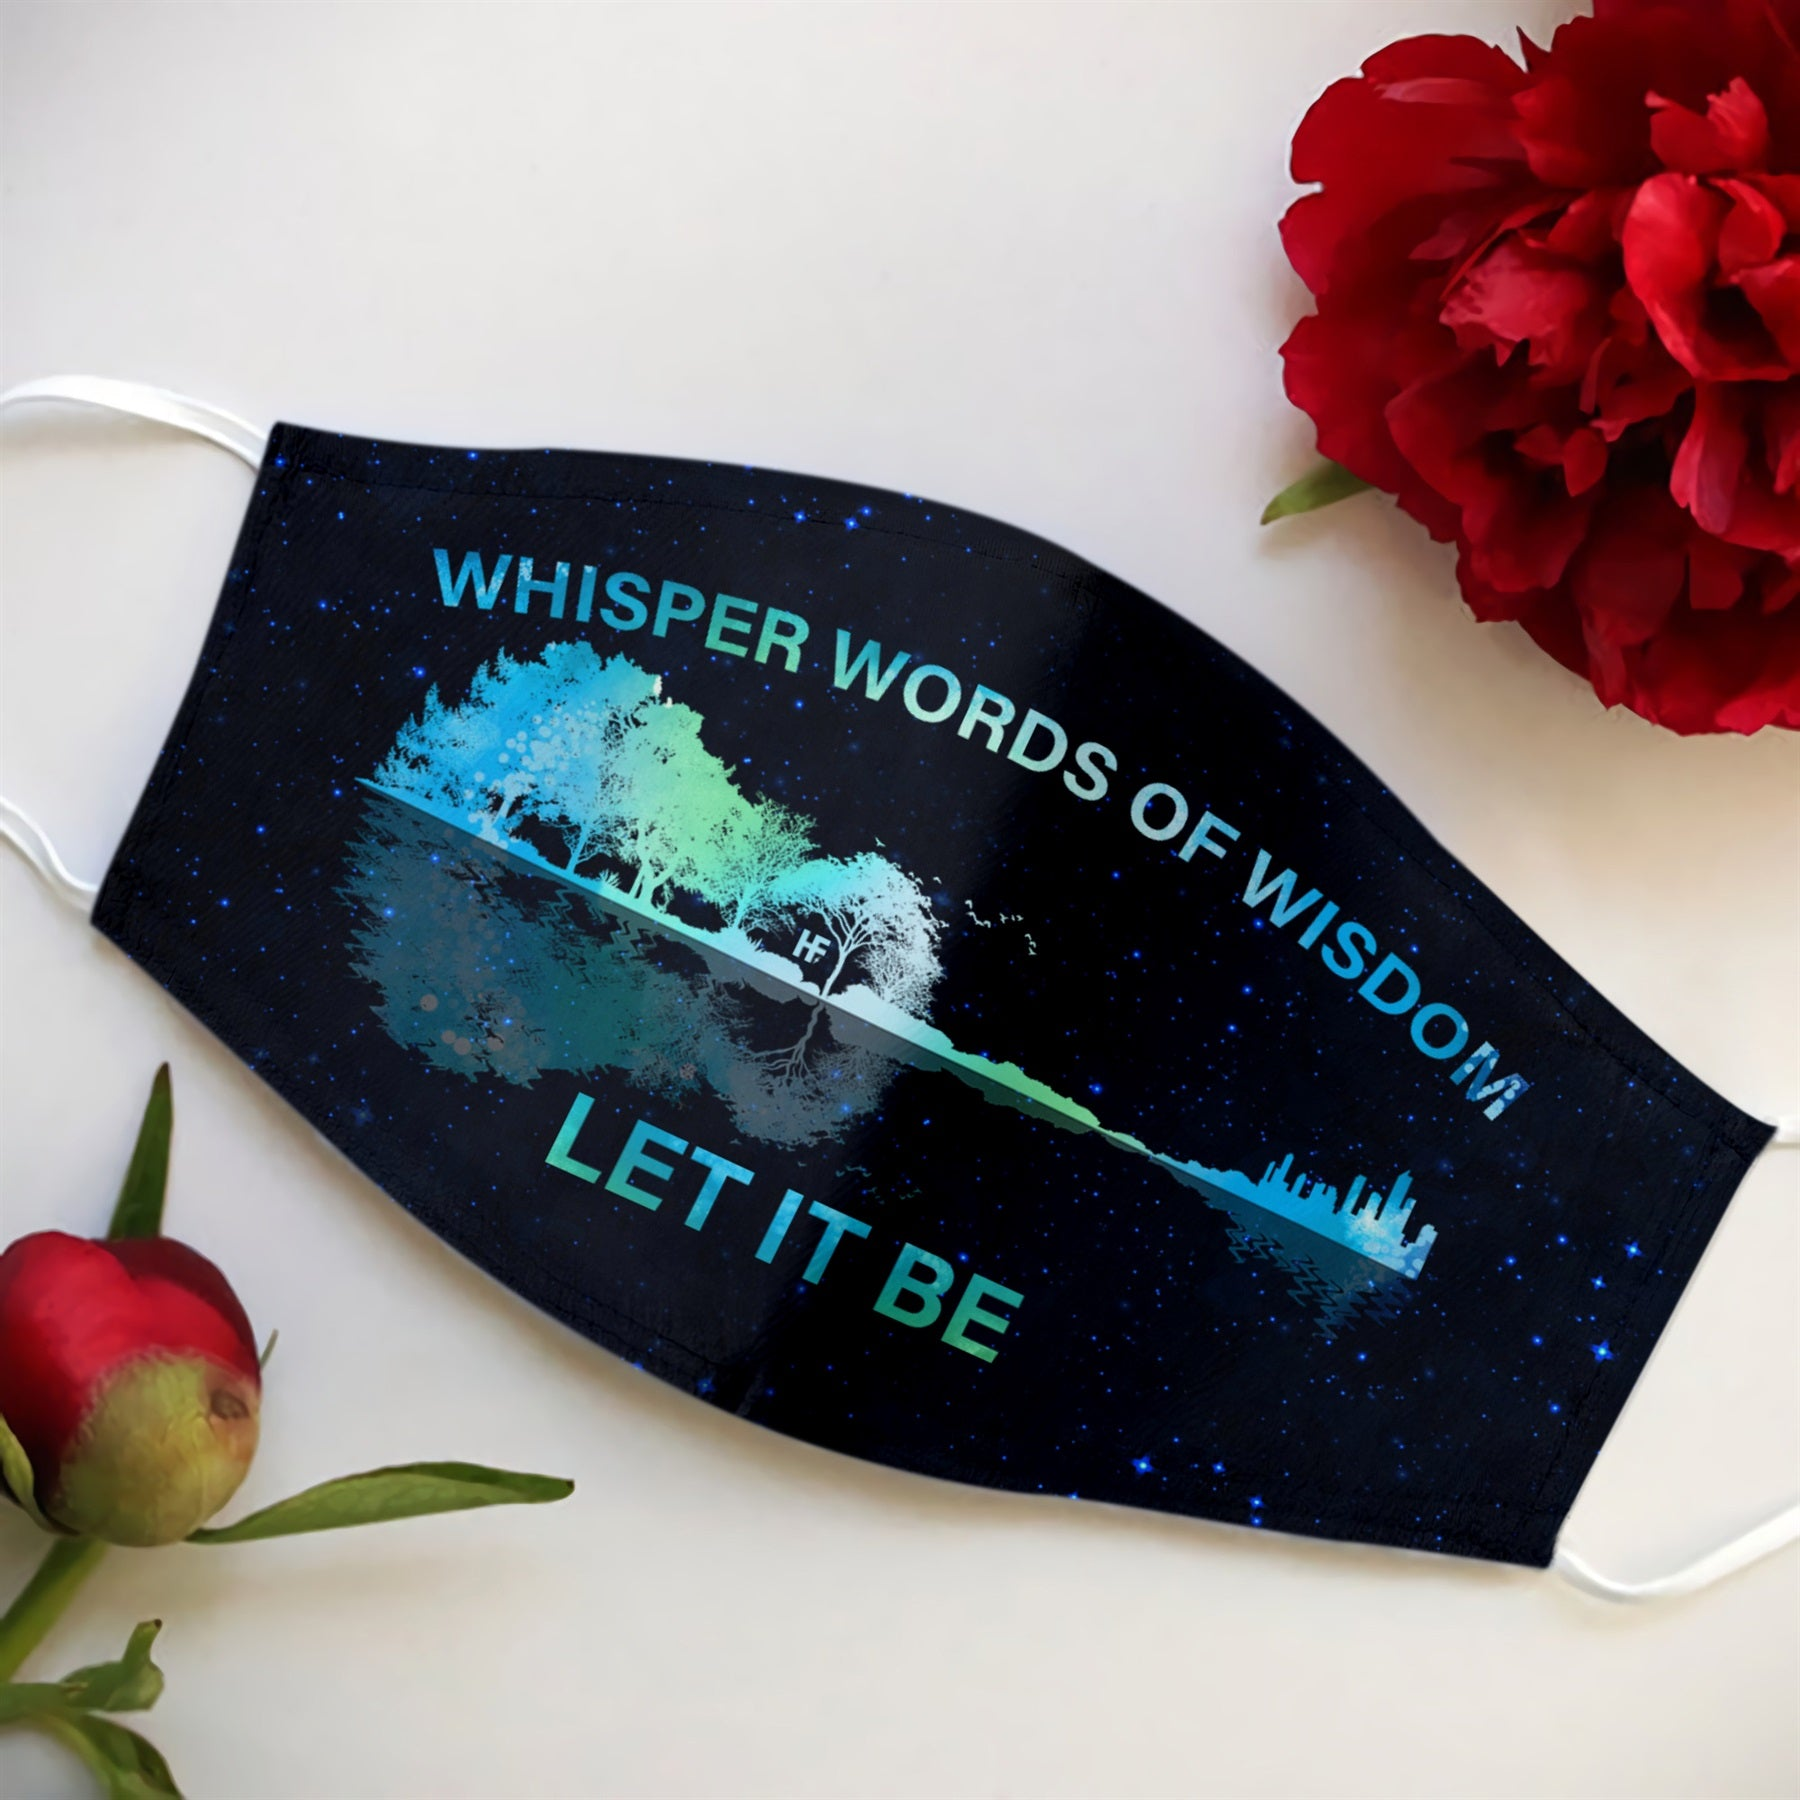 Guitar Whisper Words Of Wisdom Let It Be EZ08 3107 Face Mask - Hyperfavor